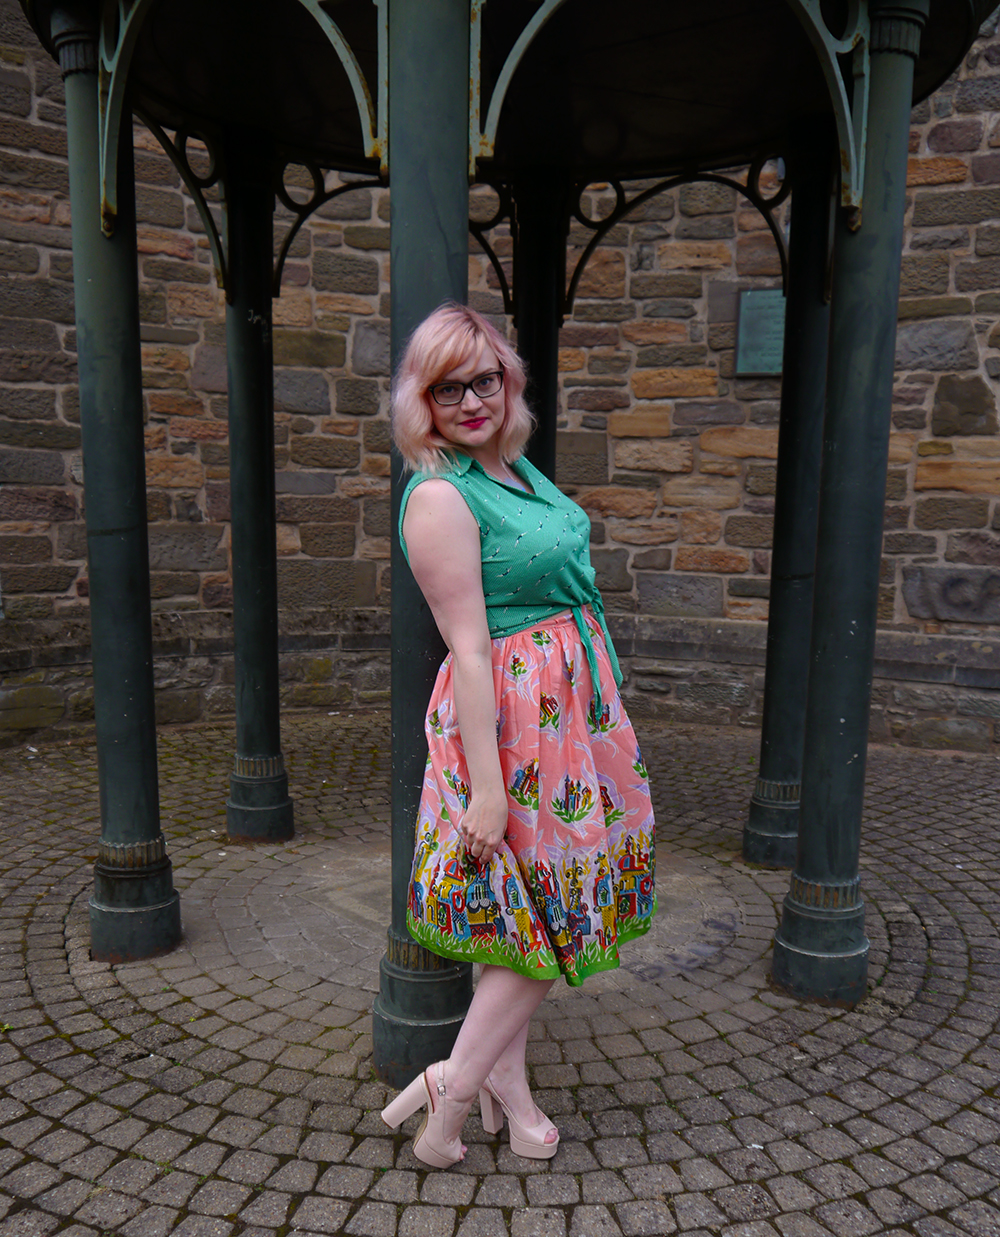 Nicely Eclectic, vintage clothing, Dundee photoshoot location, swing dress, Sugar and Vice necklace, modern styling with vintage, pink hair, candy floss hair DIY